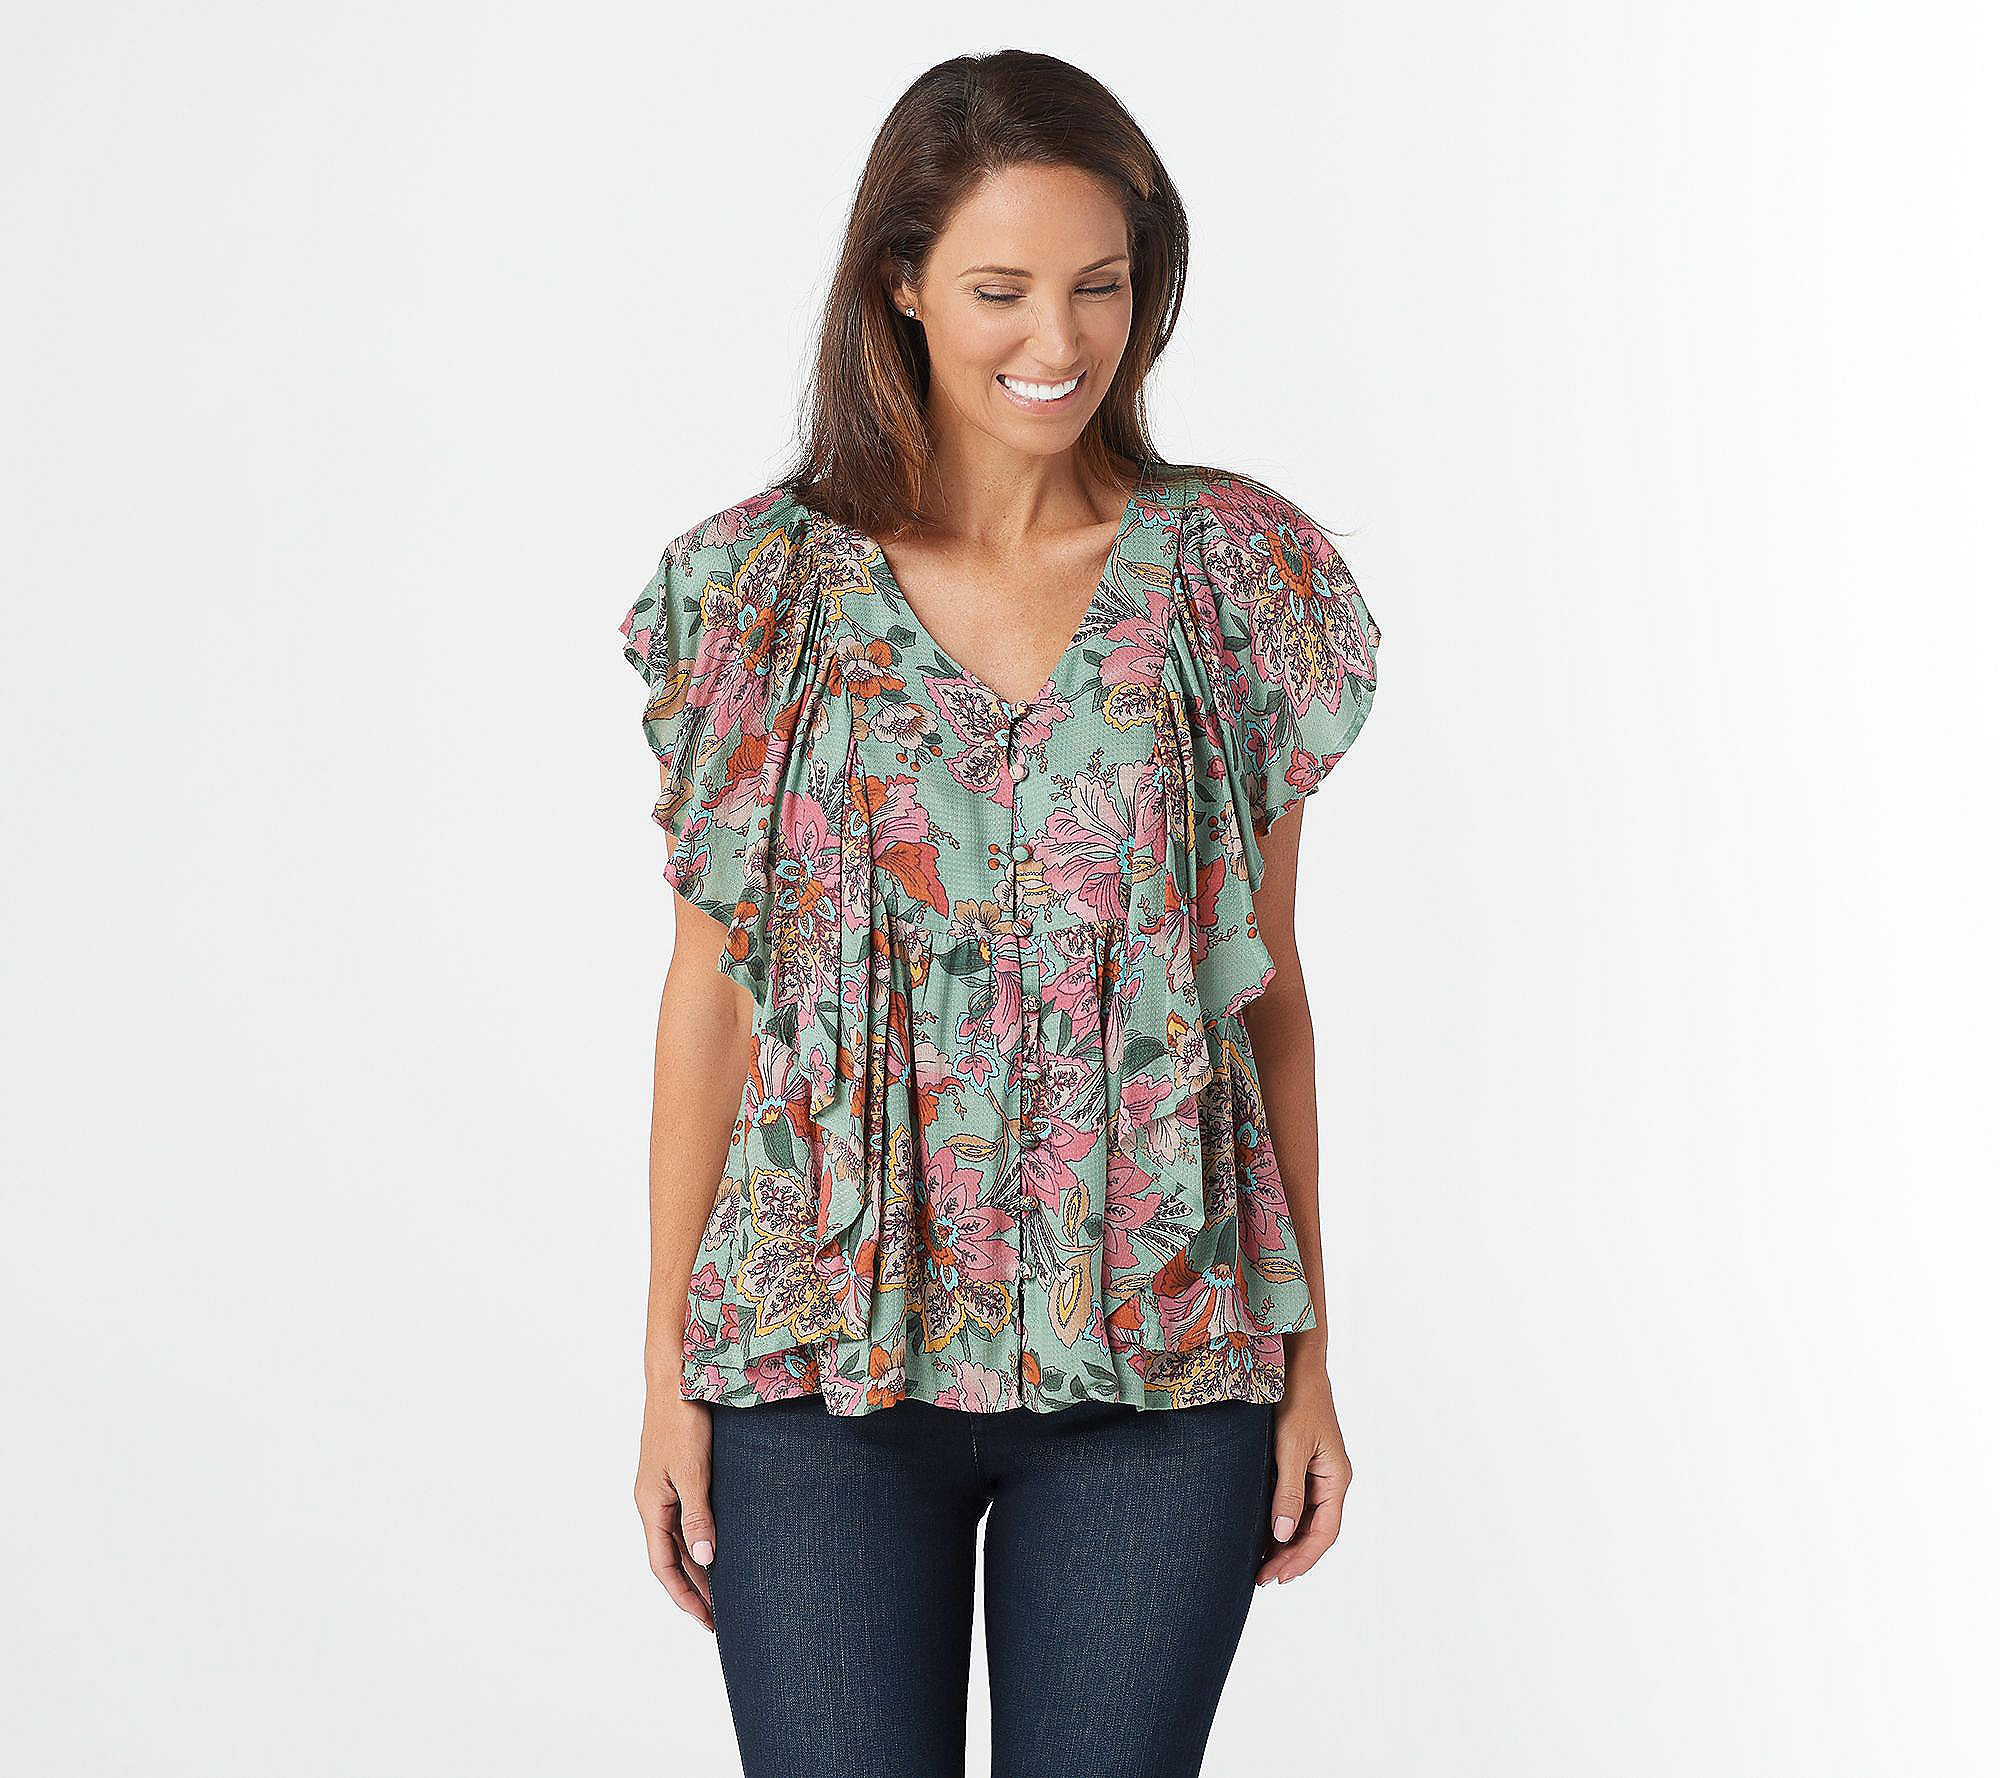 Final Sale NO Returns Last ONE in Stock! Paisley Flutter Sleeve Top Blouse Shirt